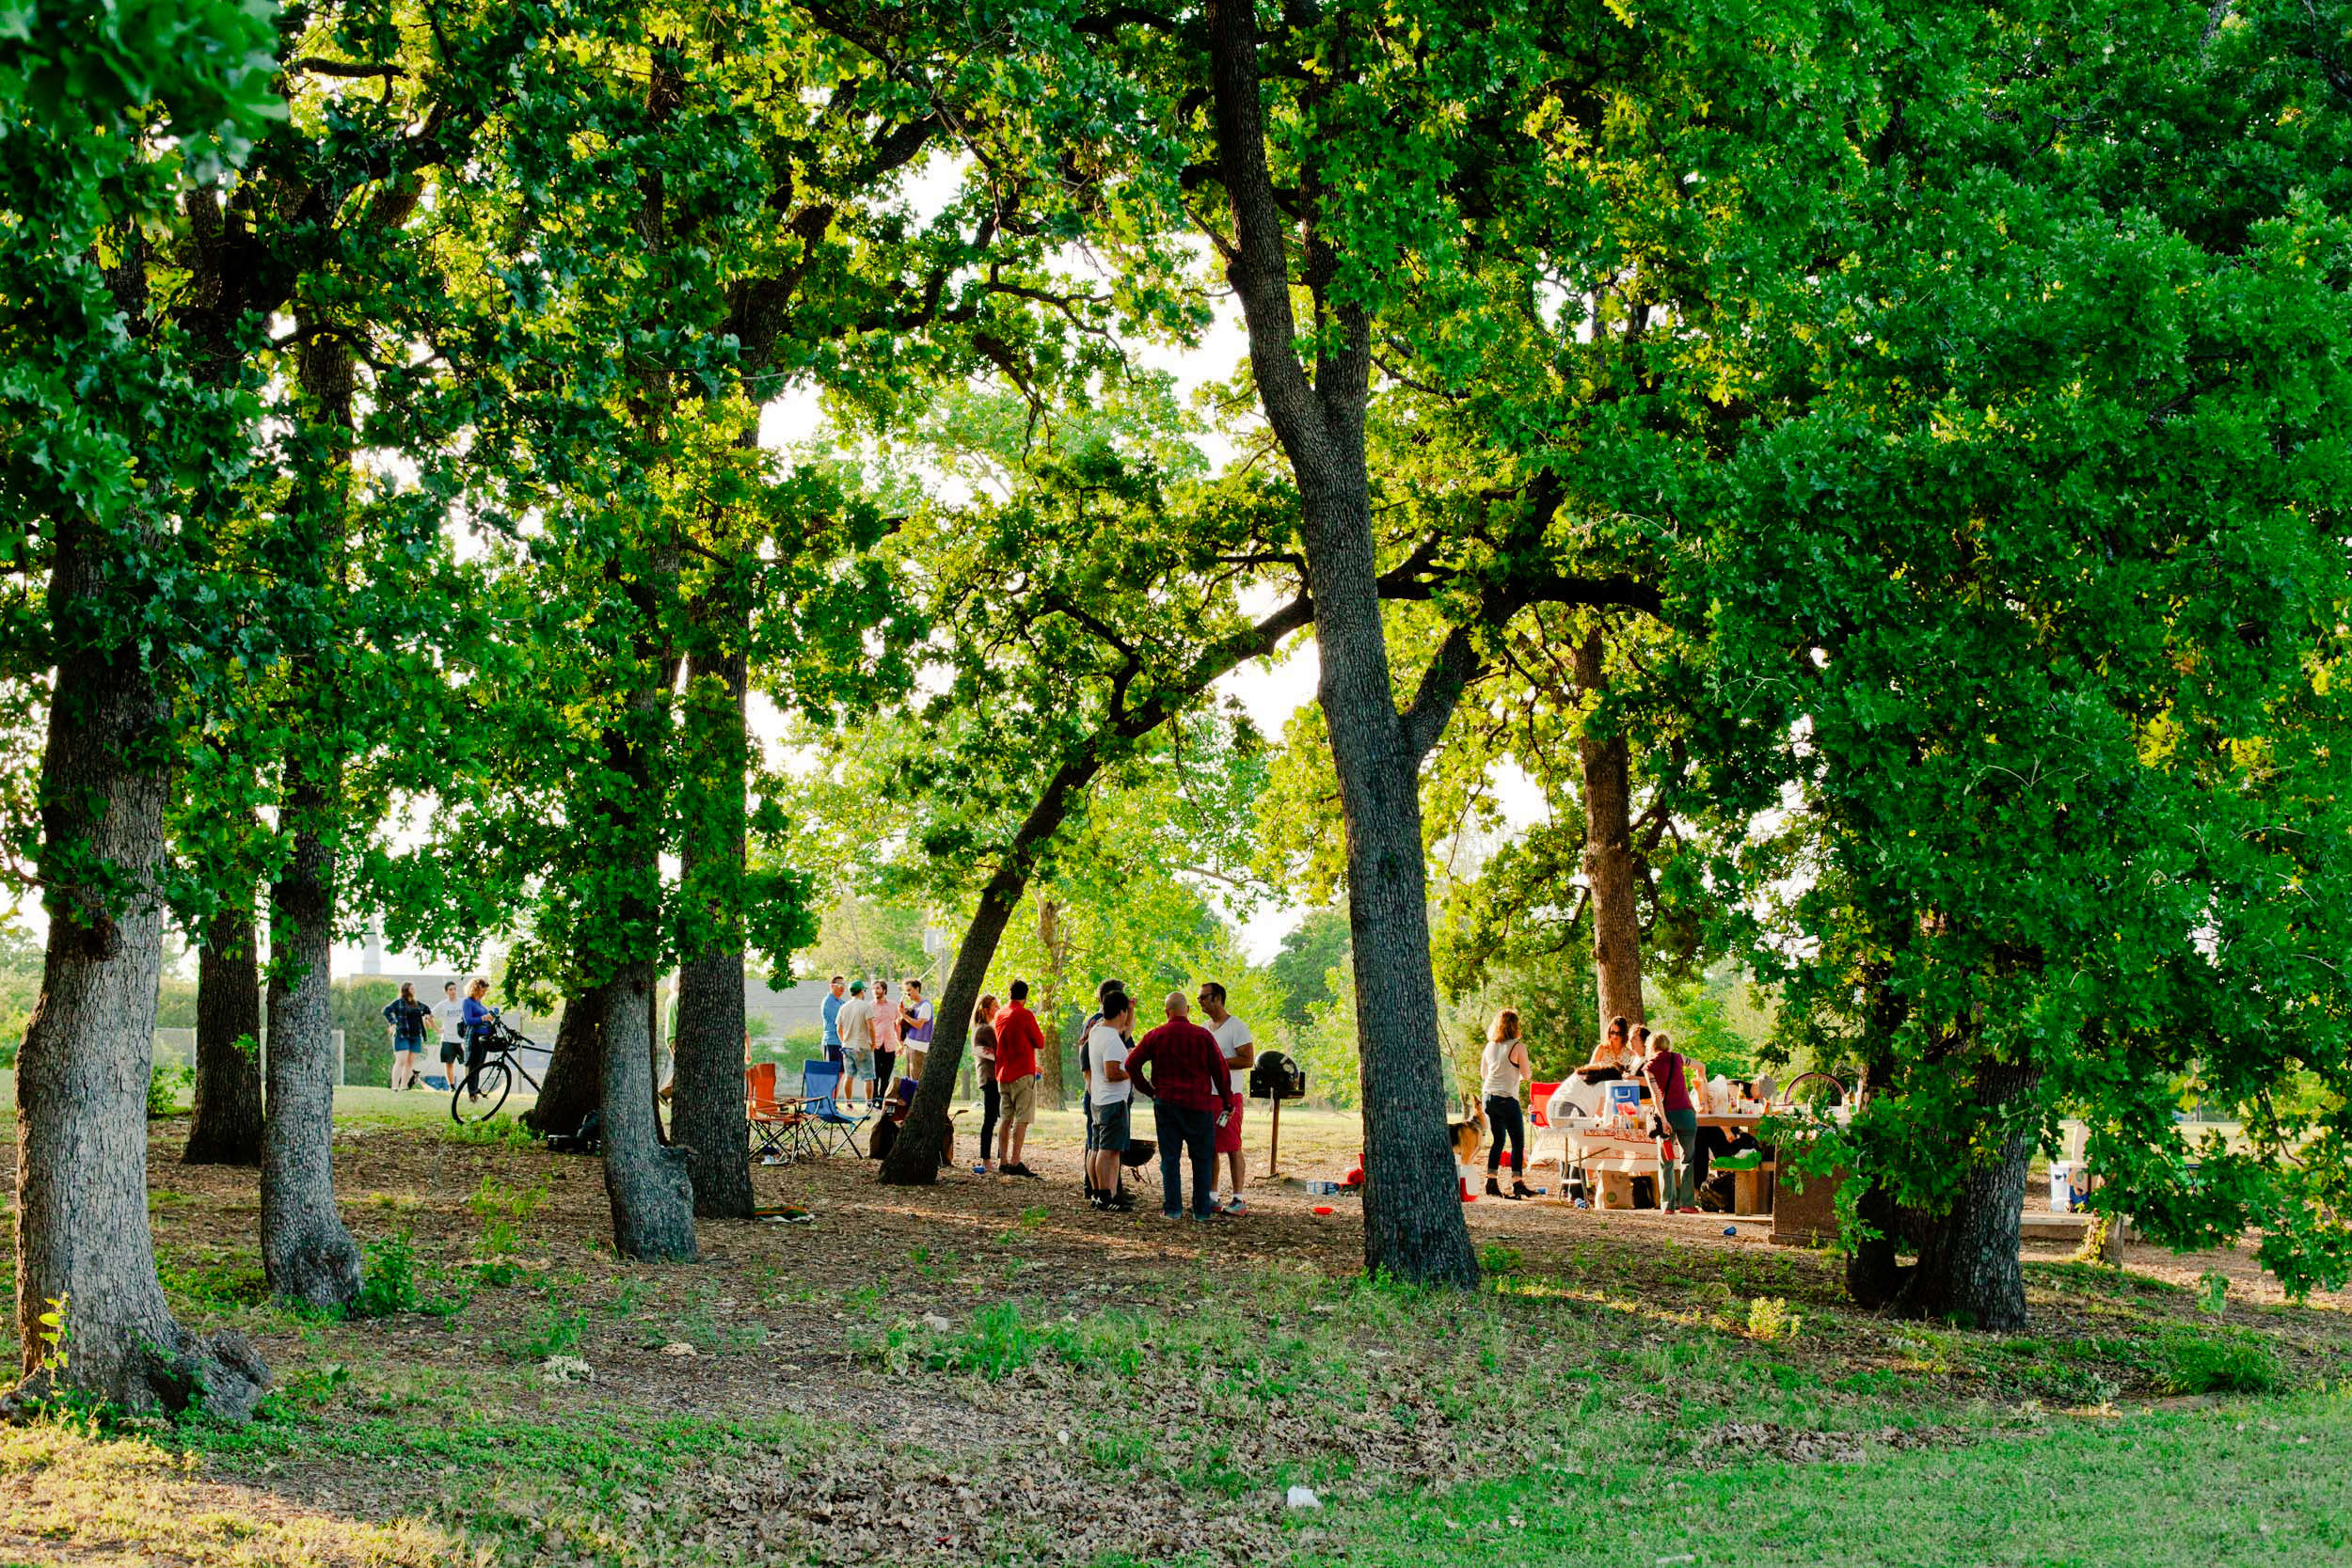 Grove of post oaks at Patterson Park